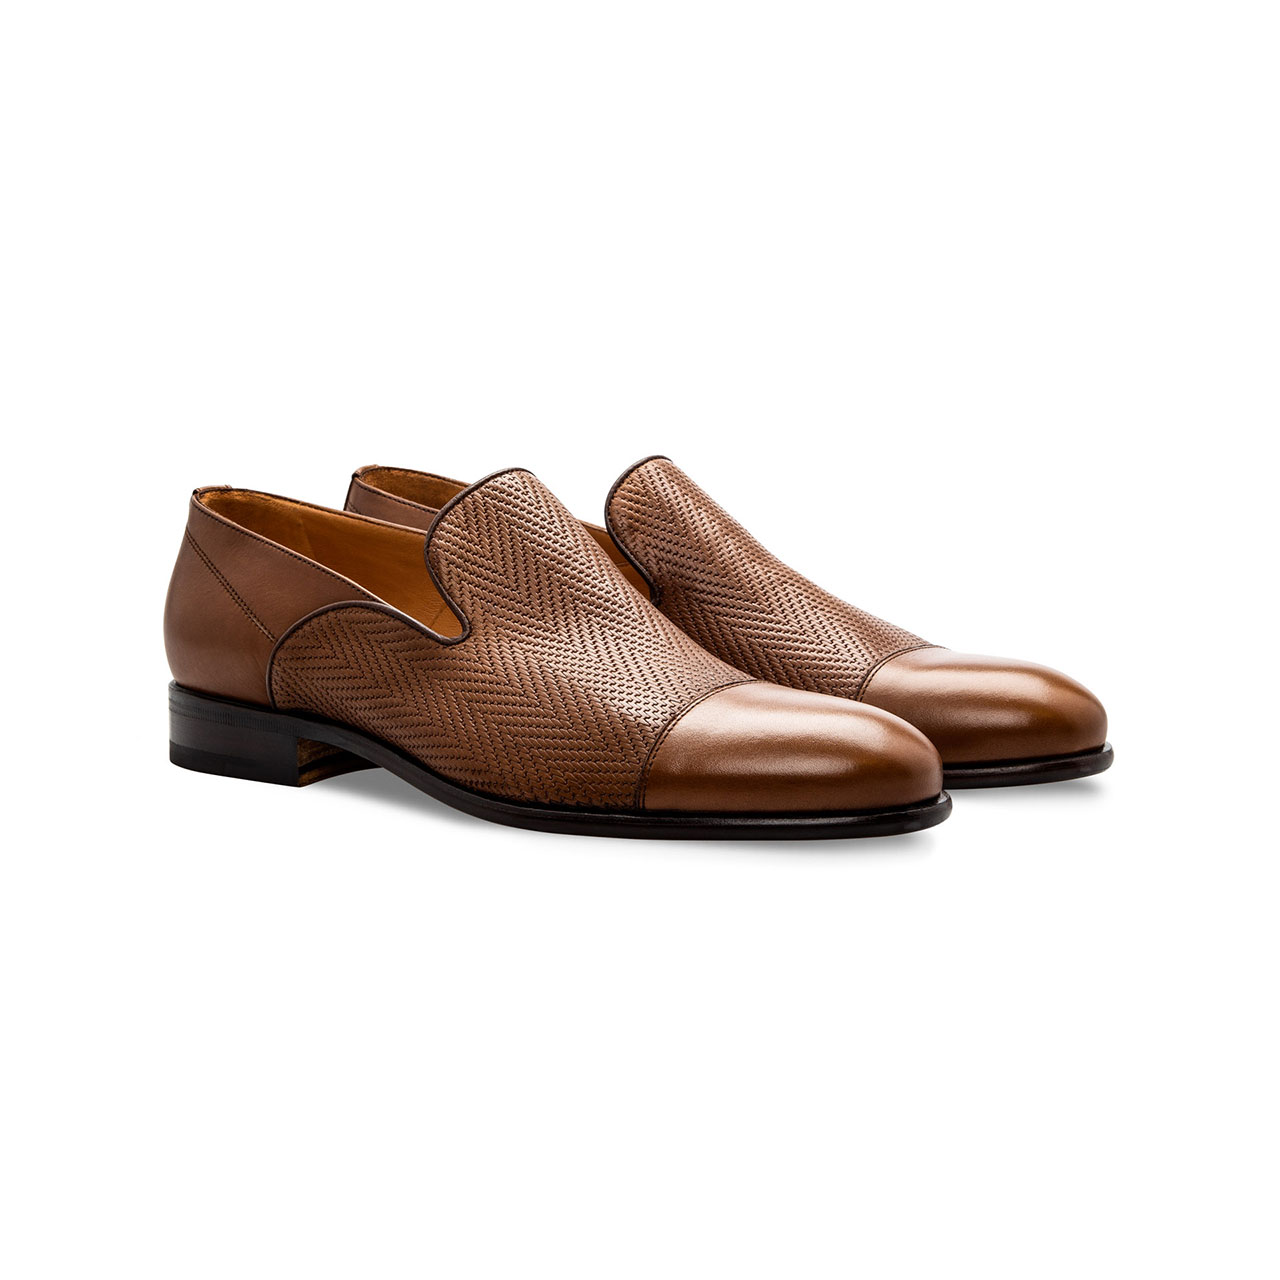 brown shoes in Jeddah Serb stores